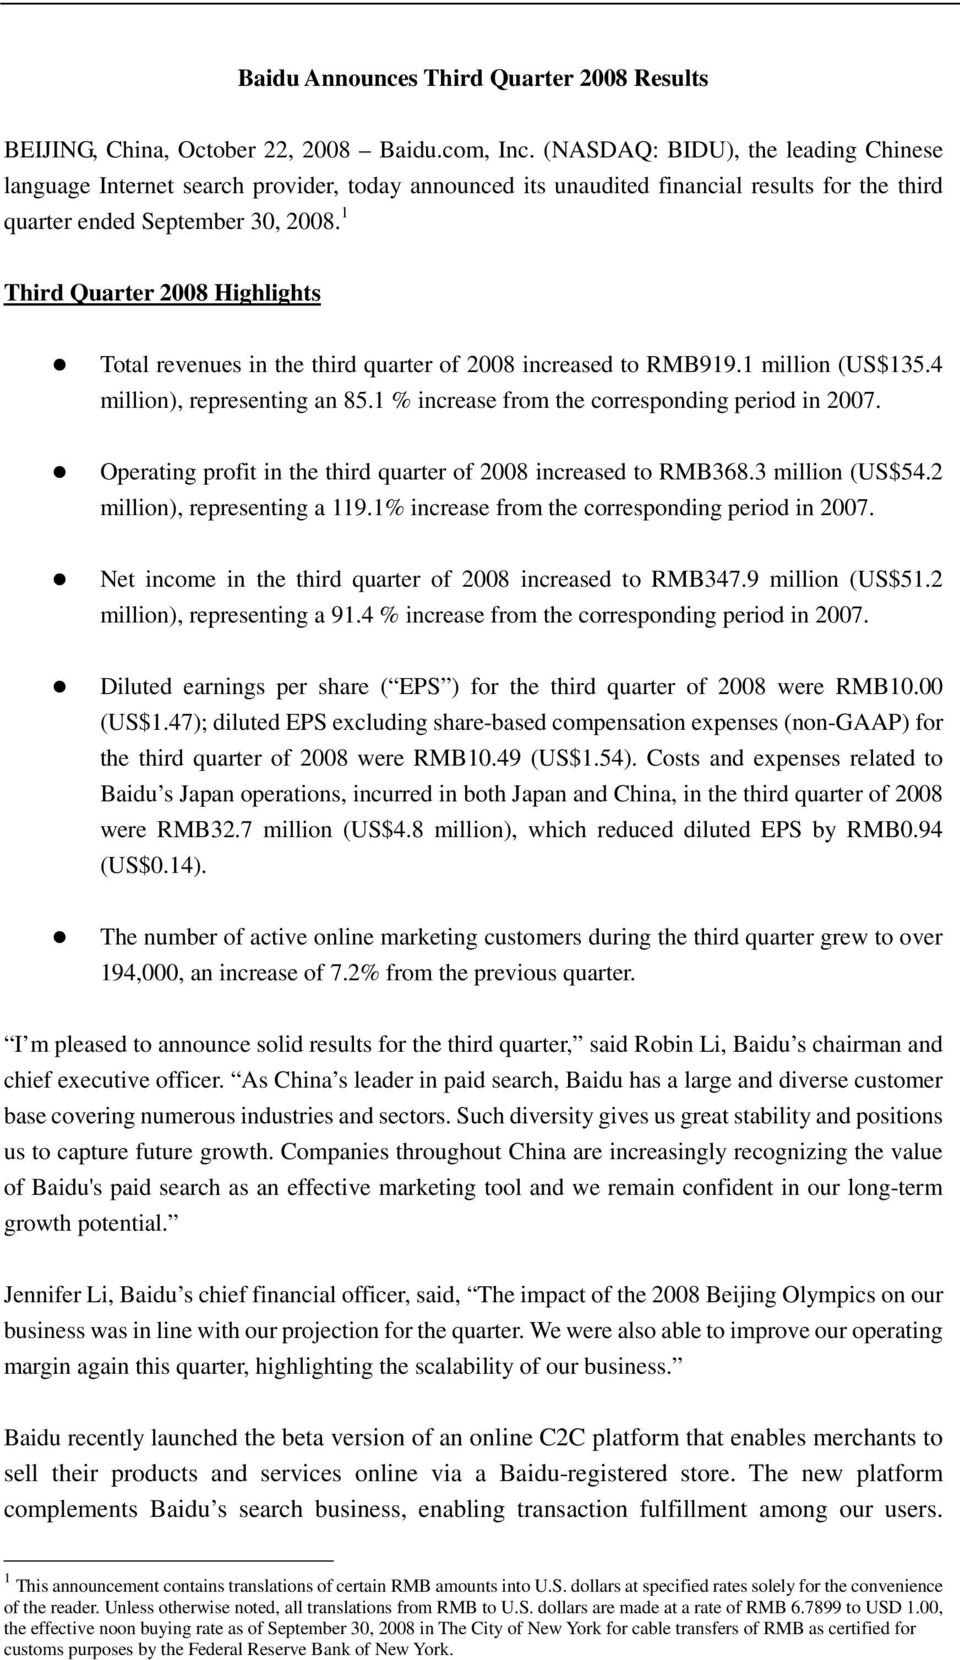 1 Third Quarter 2008 Highlights Total revenues in the third quarter of 2008 increased to RMB919.1 million (US$135.4 million), representing an 85.1 % increase from the corresponding period in 2007.